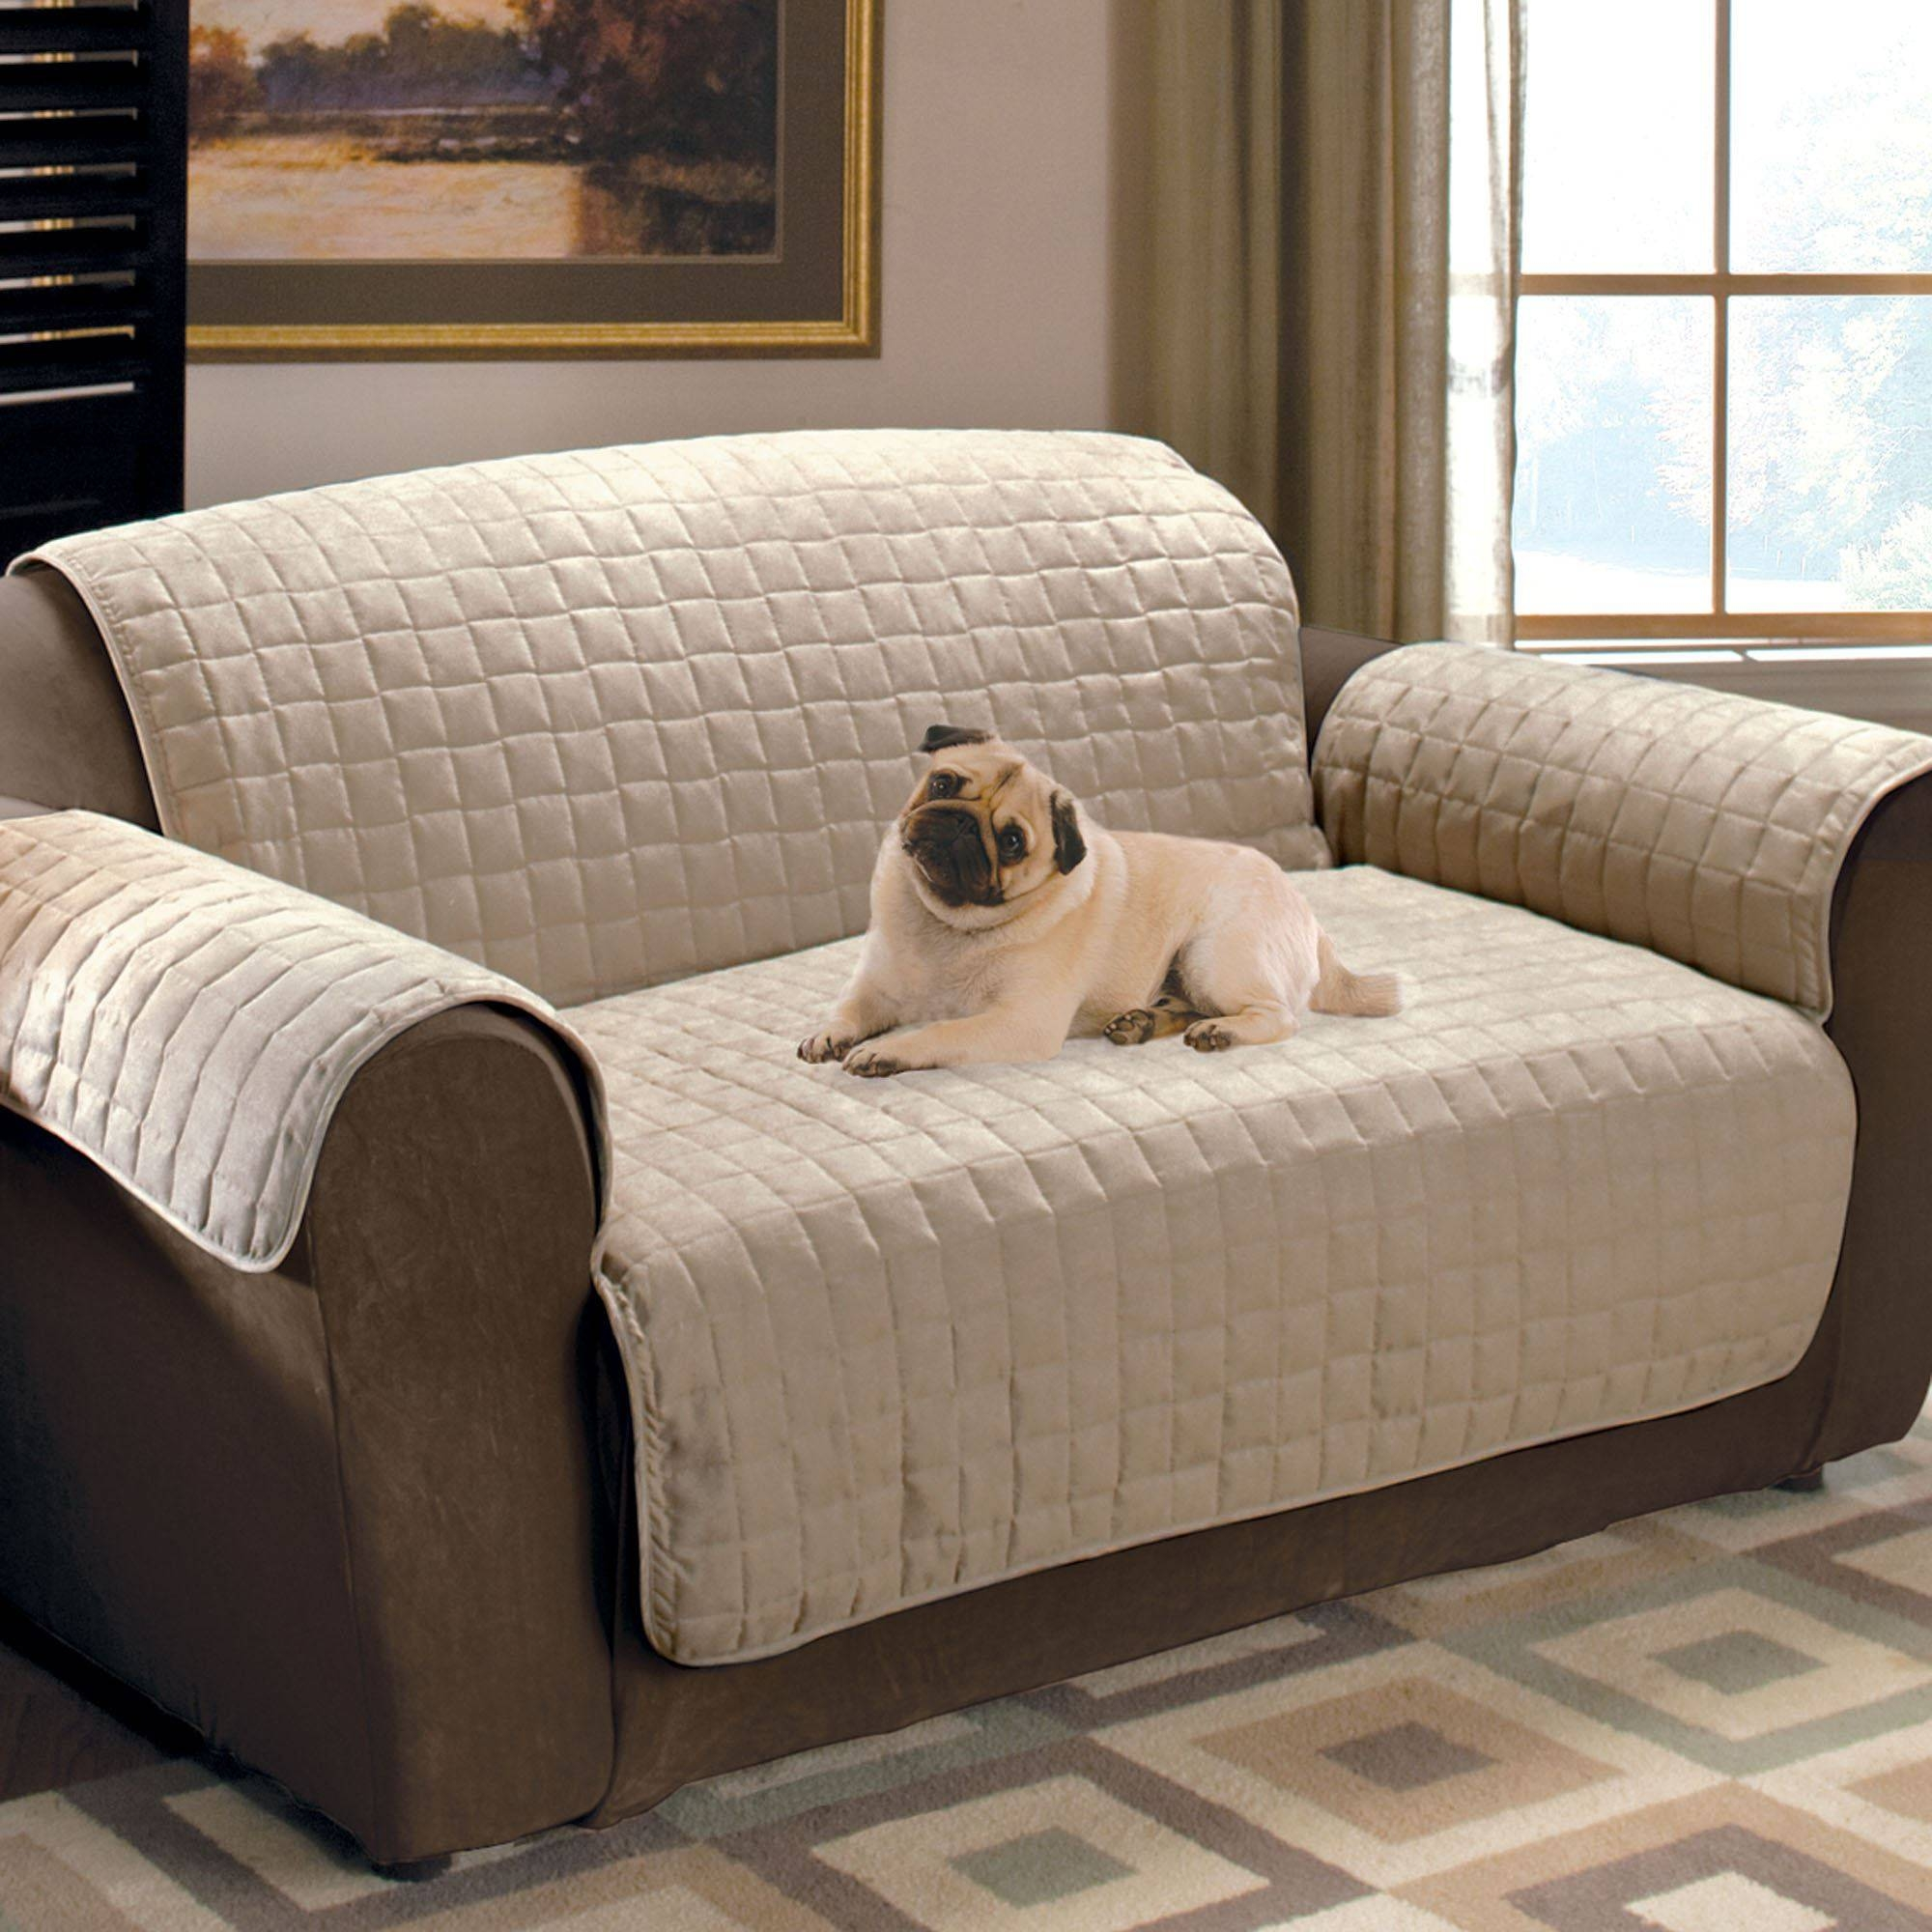 Faux Suede Pet Furniture Covers For Sofas, Loveseats, And Chairs pertaining to Sofa And Chair Covers (Image 7 of 30)